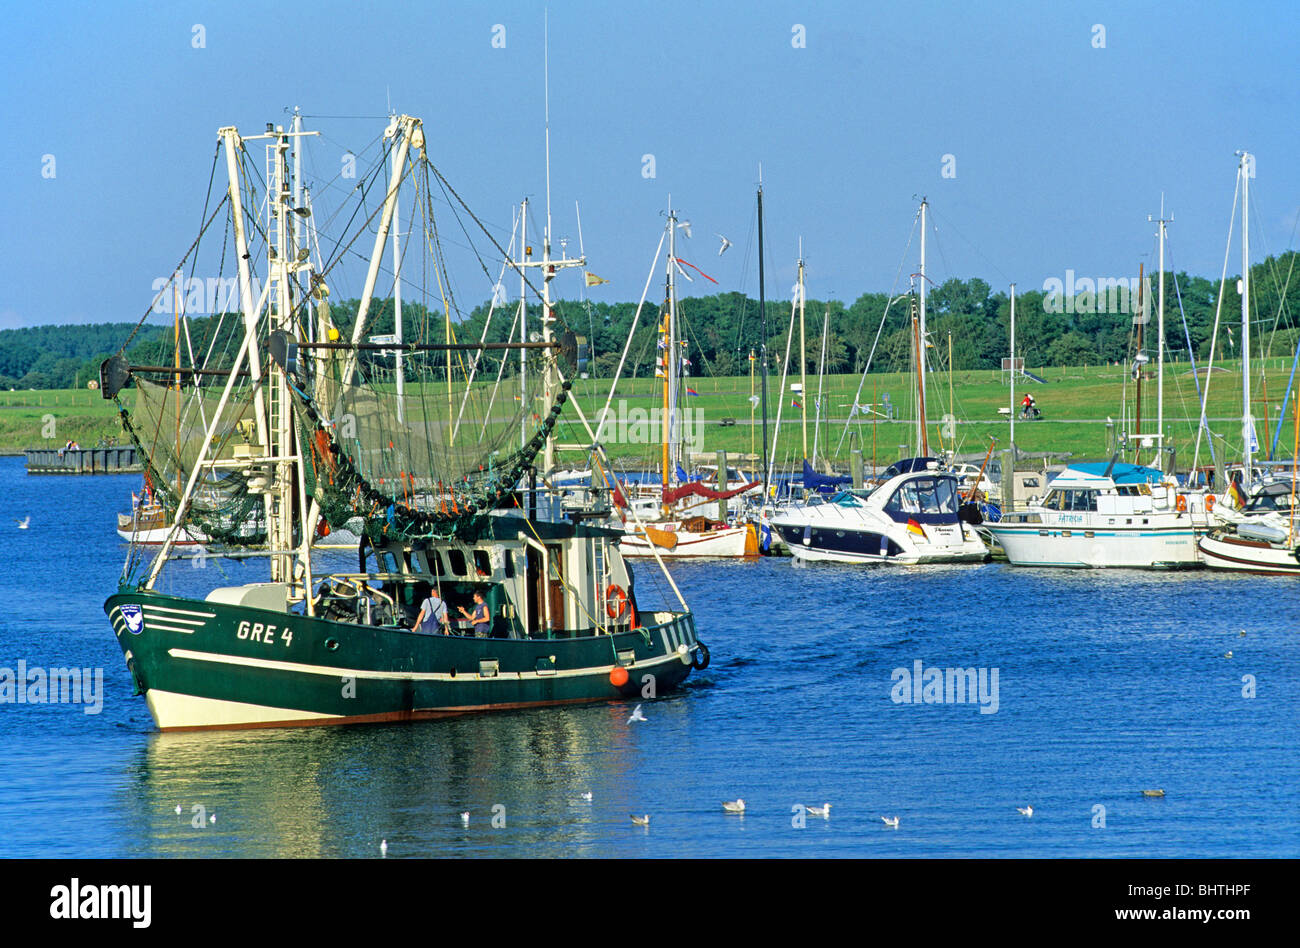 fishing smack at the harbour of Greetsiel, East Friesland, North Sea Coast, Lower Saxony, Germany - Stock Image